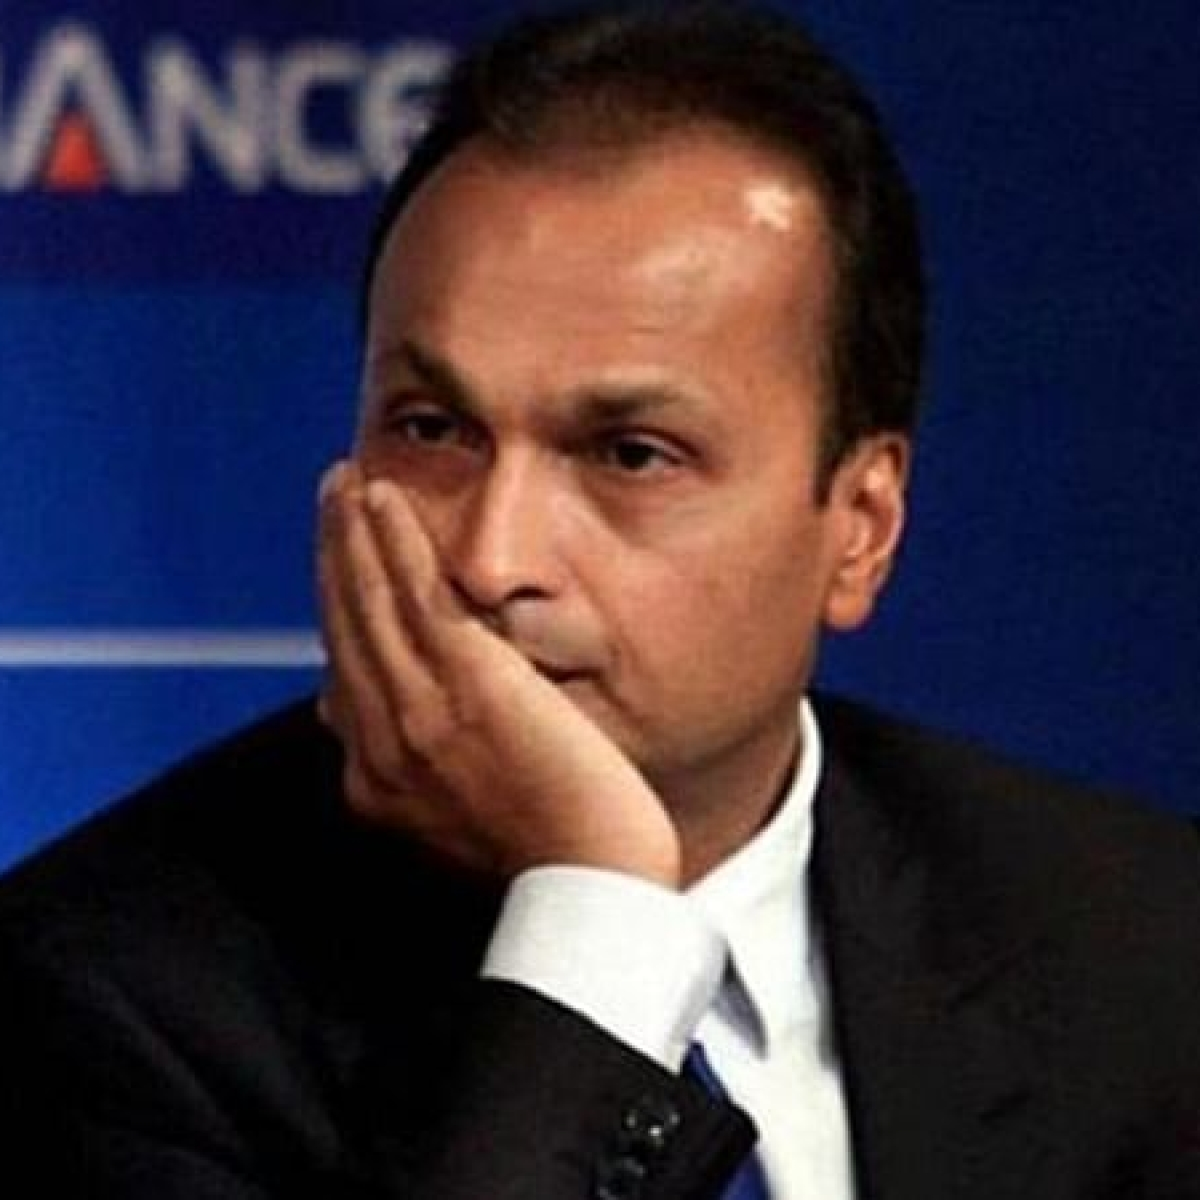 RCom group owes around Rs 26,000 cr to Indian banks, financial institutions: Company